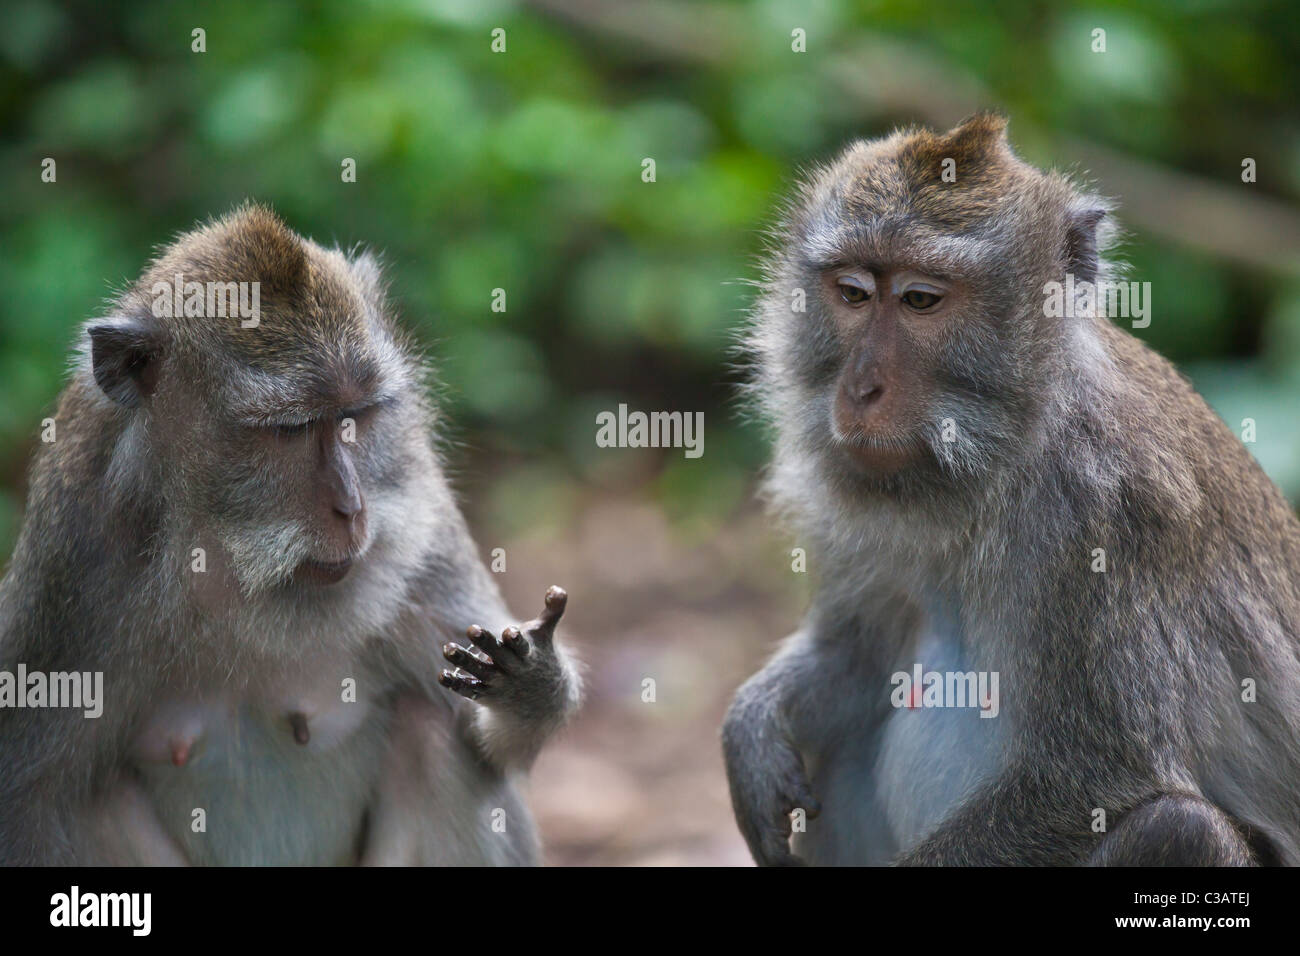 BALINESE MACAQUES (Macaca fascicuiaris) in the MONKEY FOREST PARK - UBUD, BALI, INDONESIA - Stock Image